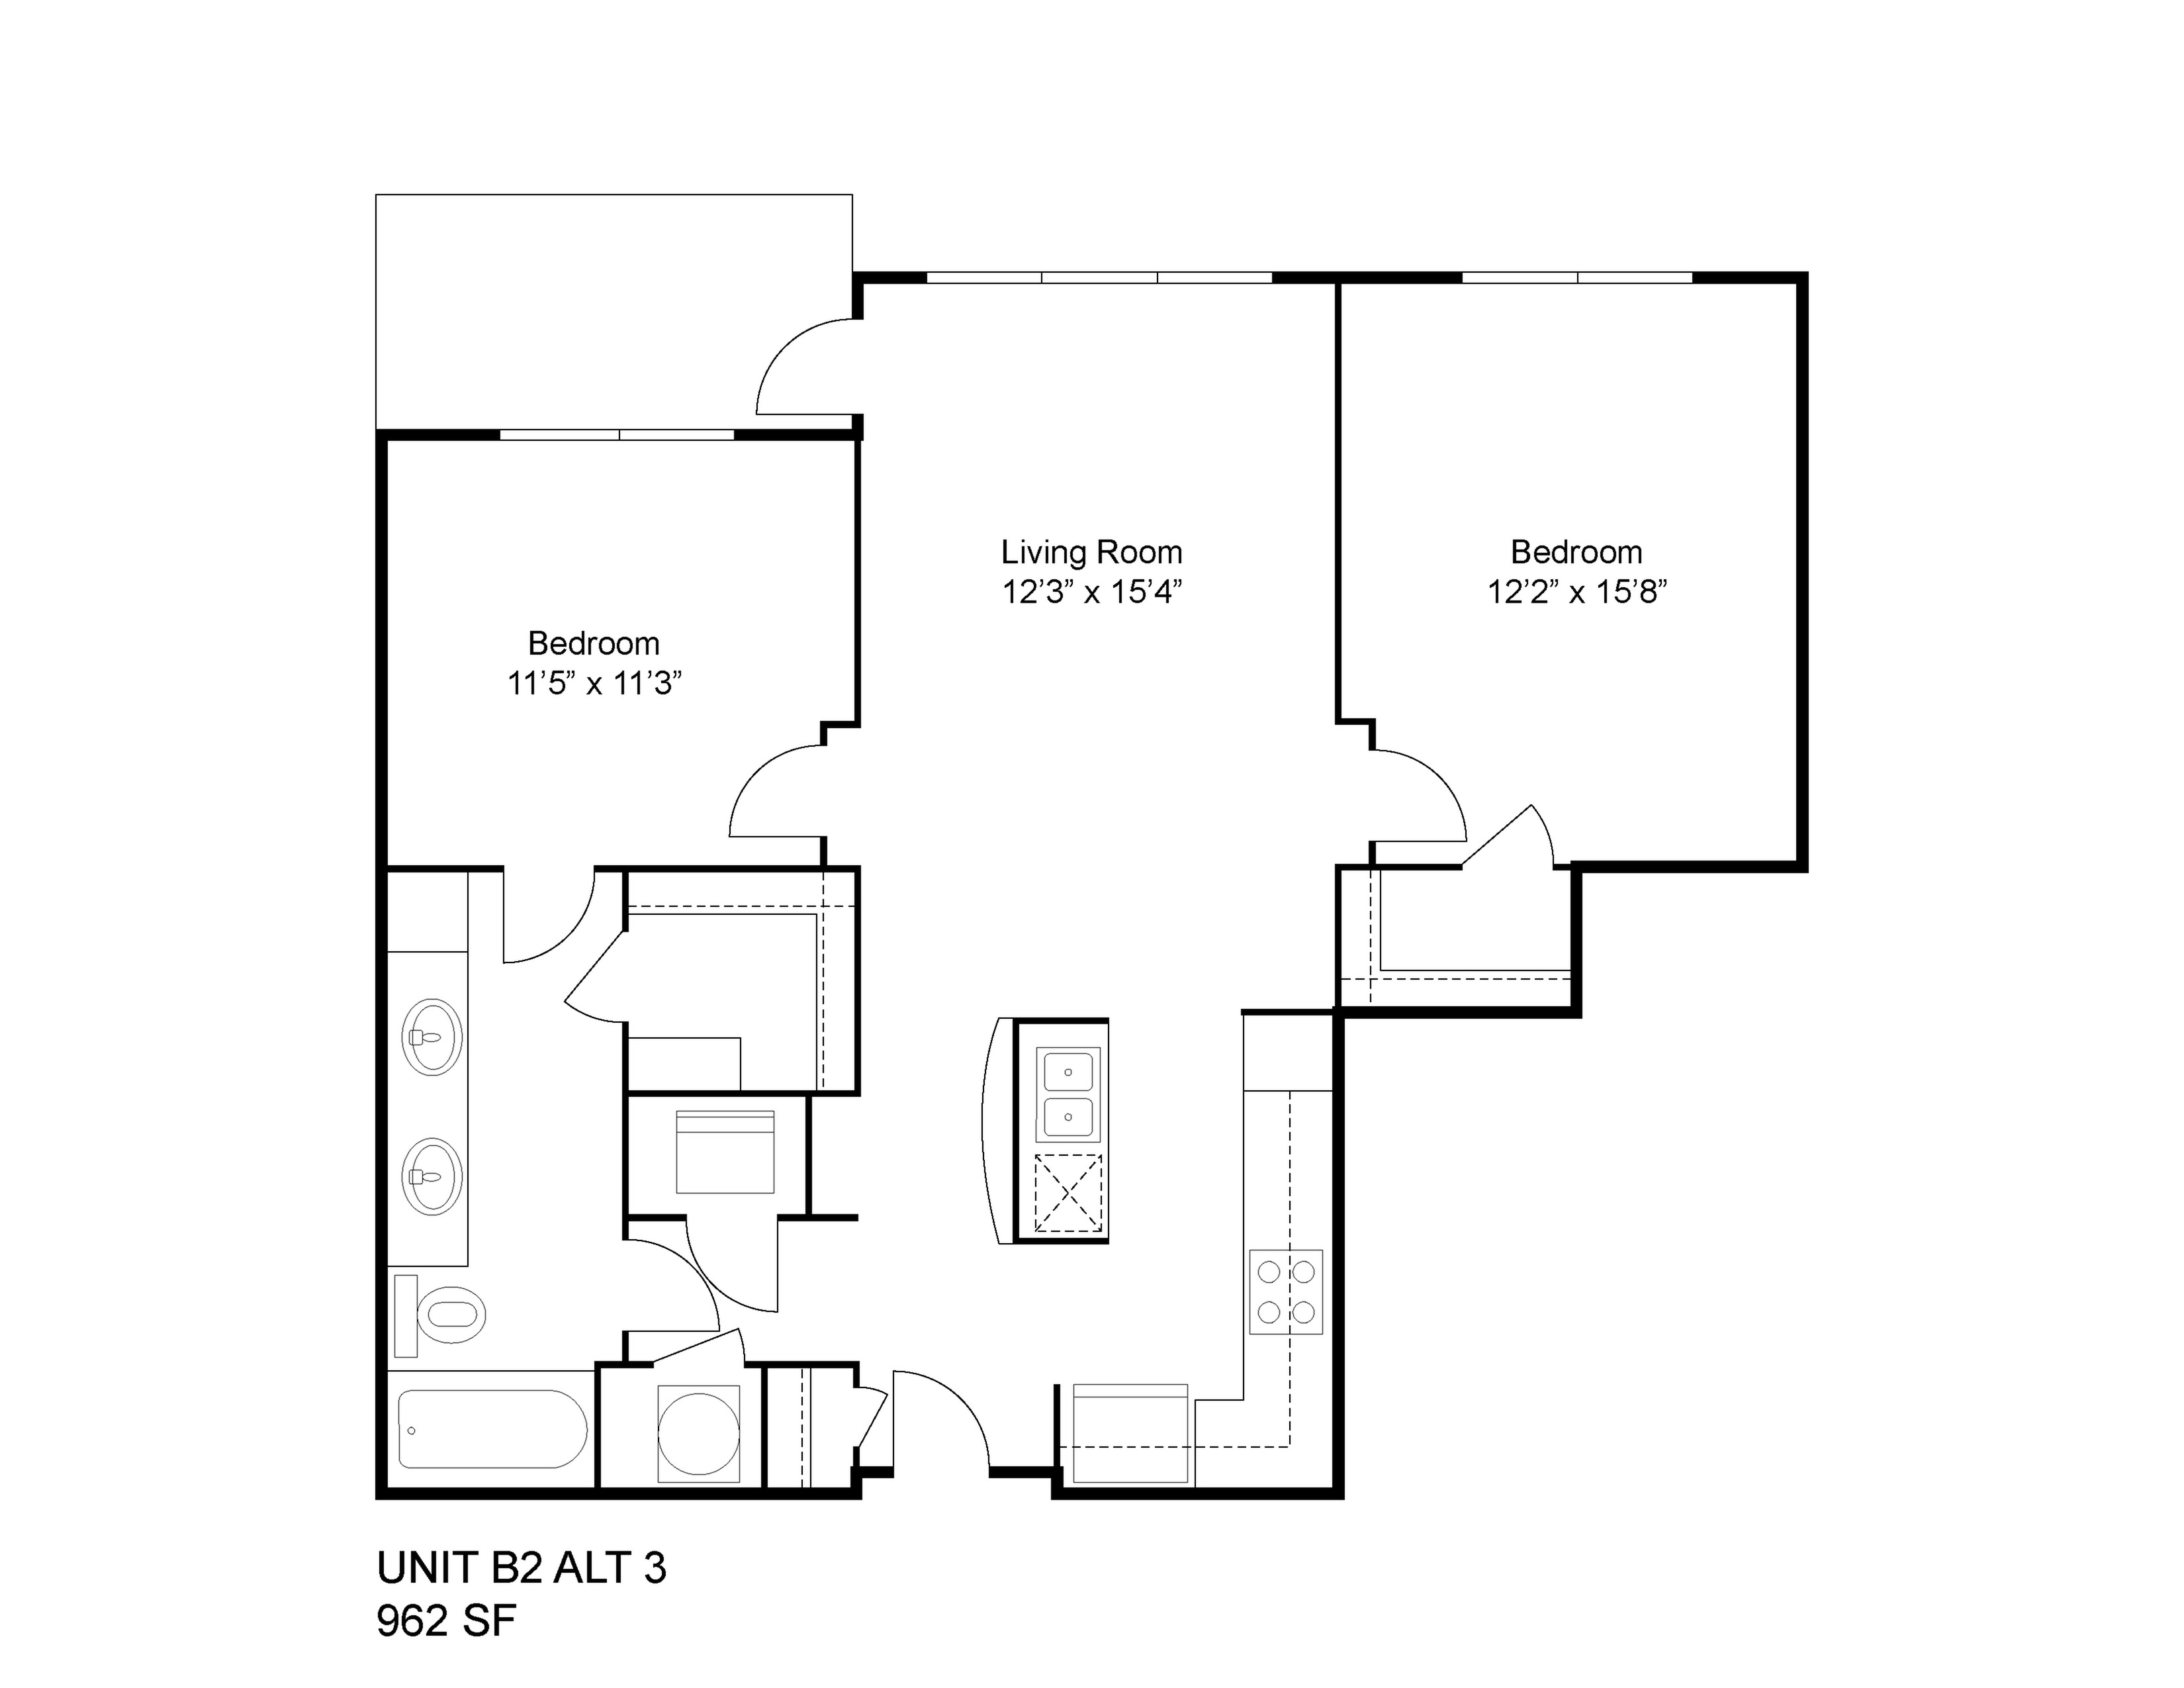 2 bed 2 bath apartment in jackson ms the district lofts for Floor plans jackson ms